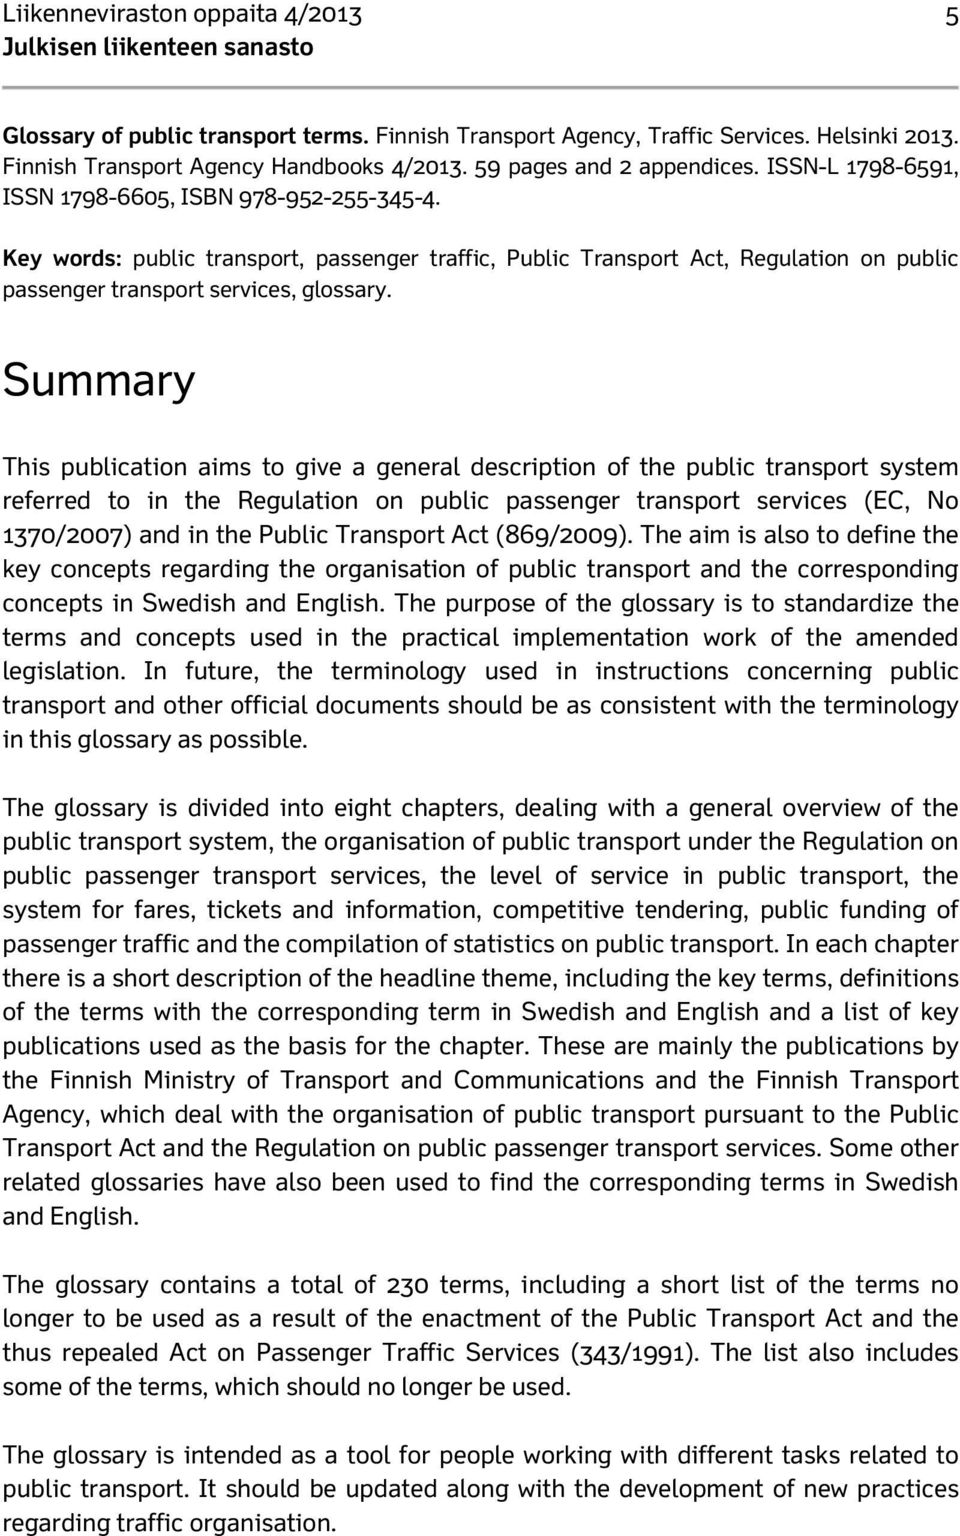 Summary This publication aims to give a general description of the public transport system referred to in the Regulation on public passenger transport services (EC, No 1370/2007) and in the Public